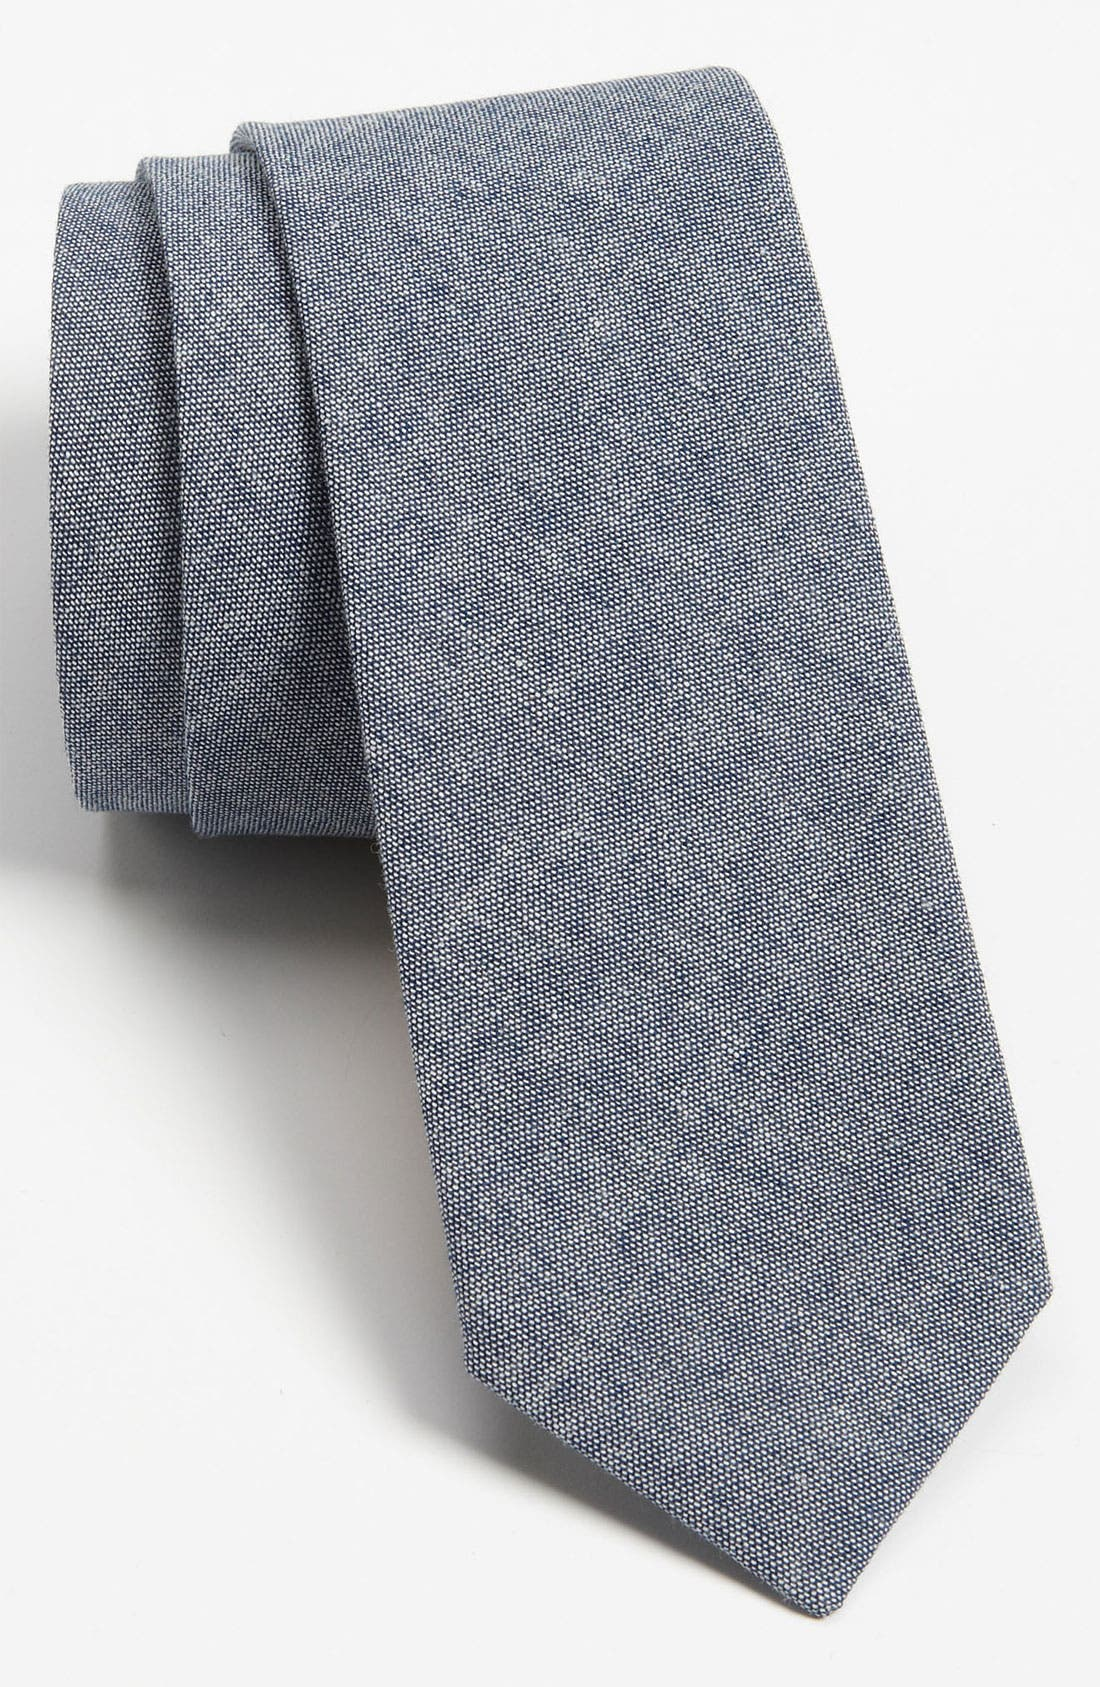 Main Image - The Tie Bar Woven Cotton Tie